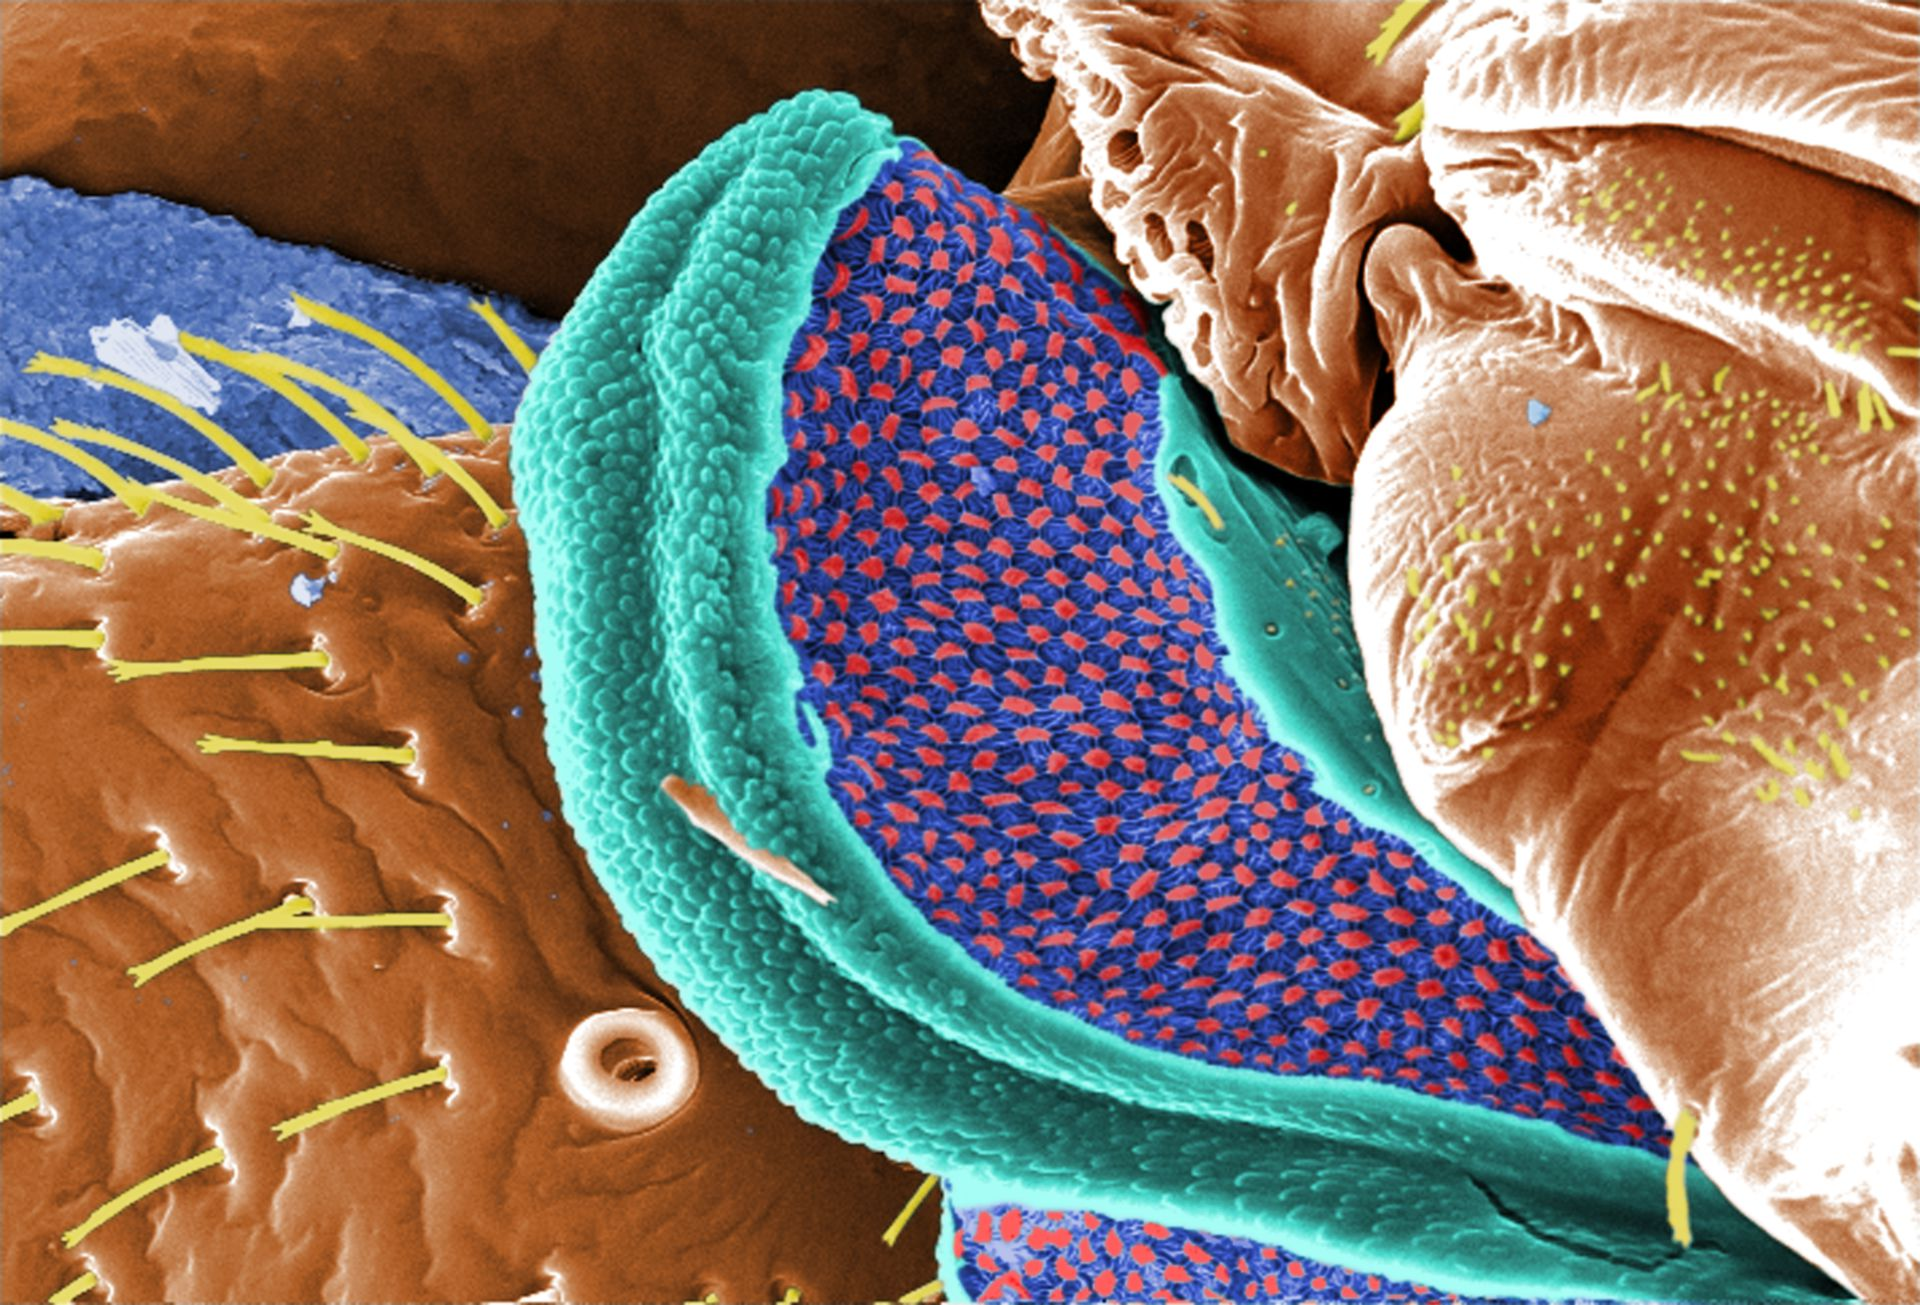 Cimex lectularius in digitally-colorized scanning electron micrograph